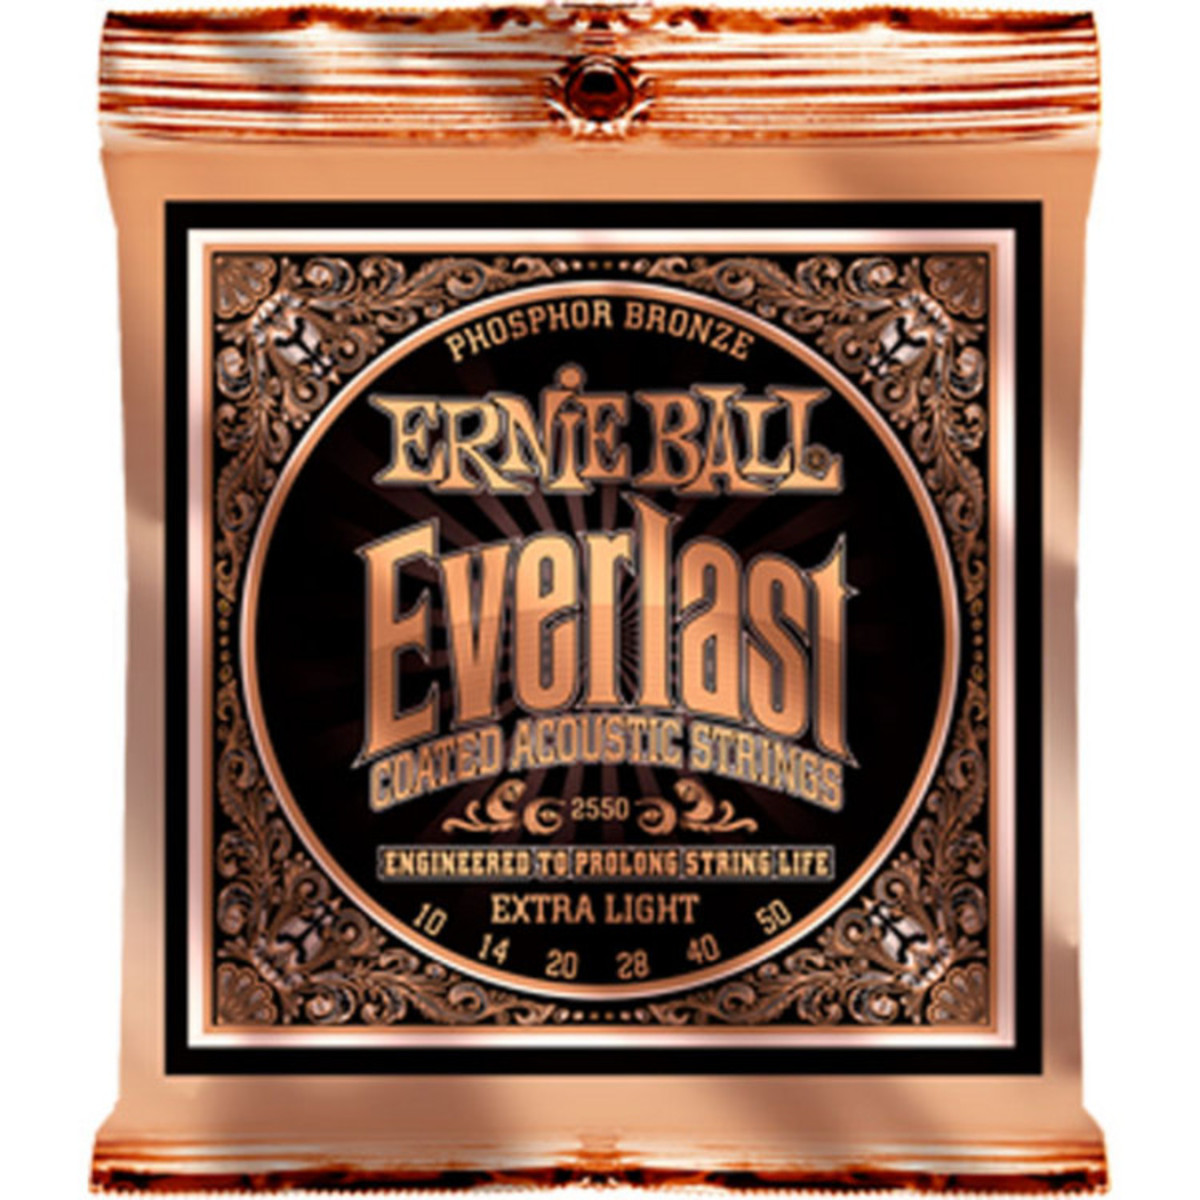 ernie ball everlast 2550 phosphor acoustic guitar strings 10 50 at gear4music. Black Bedroom Furniture Sets. Home Design Ideas